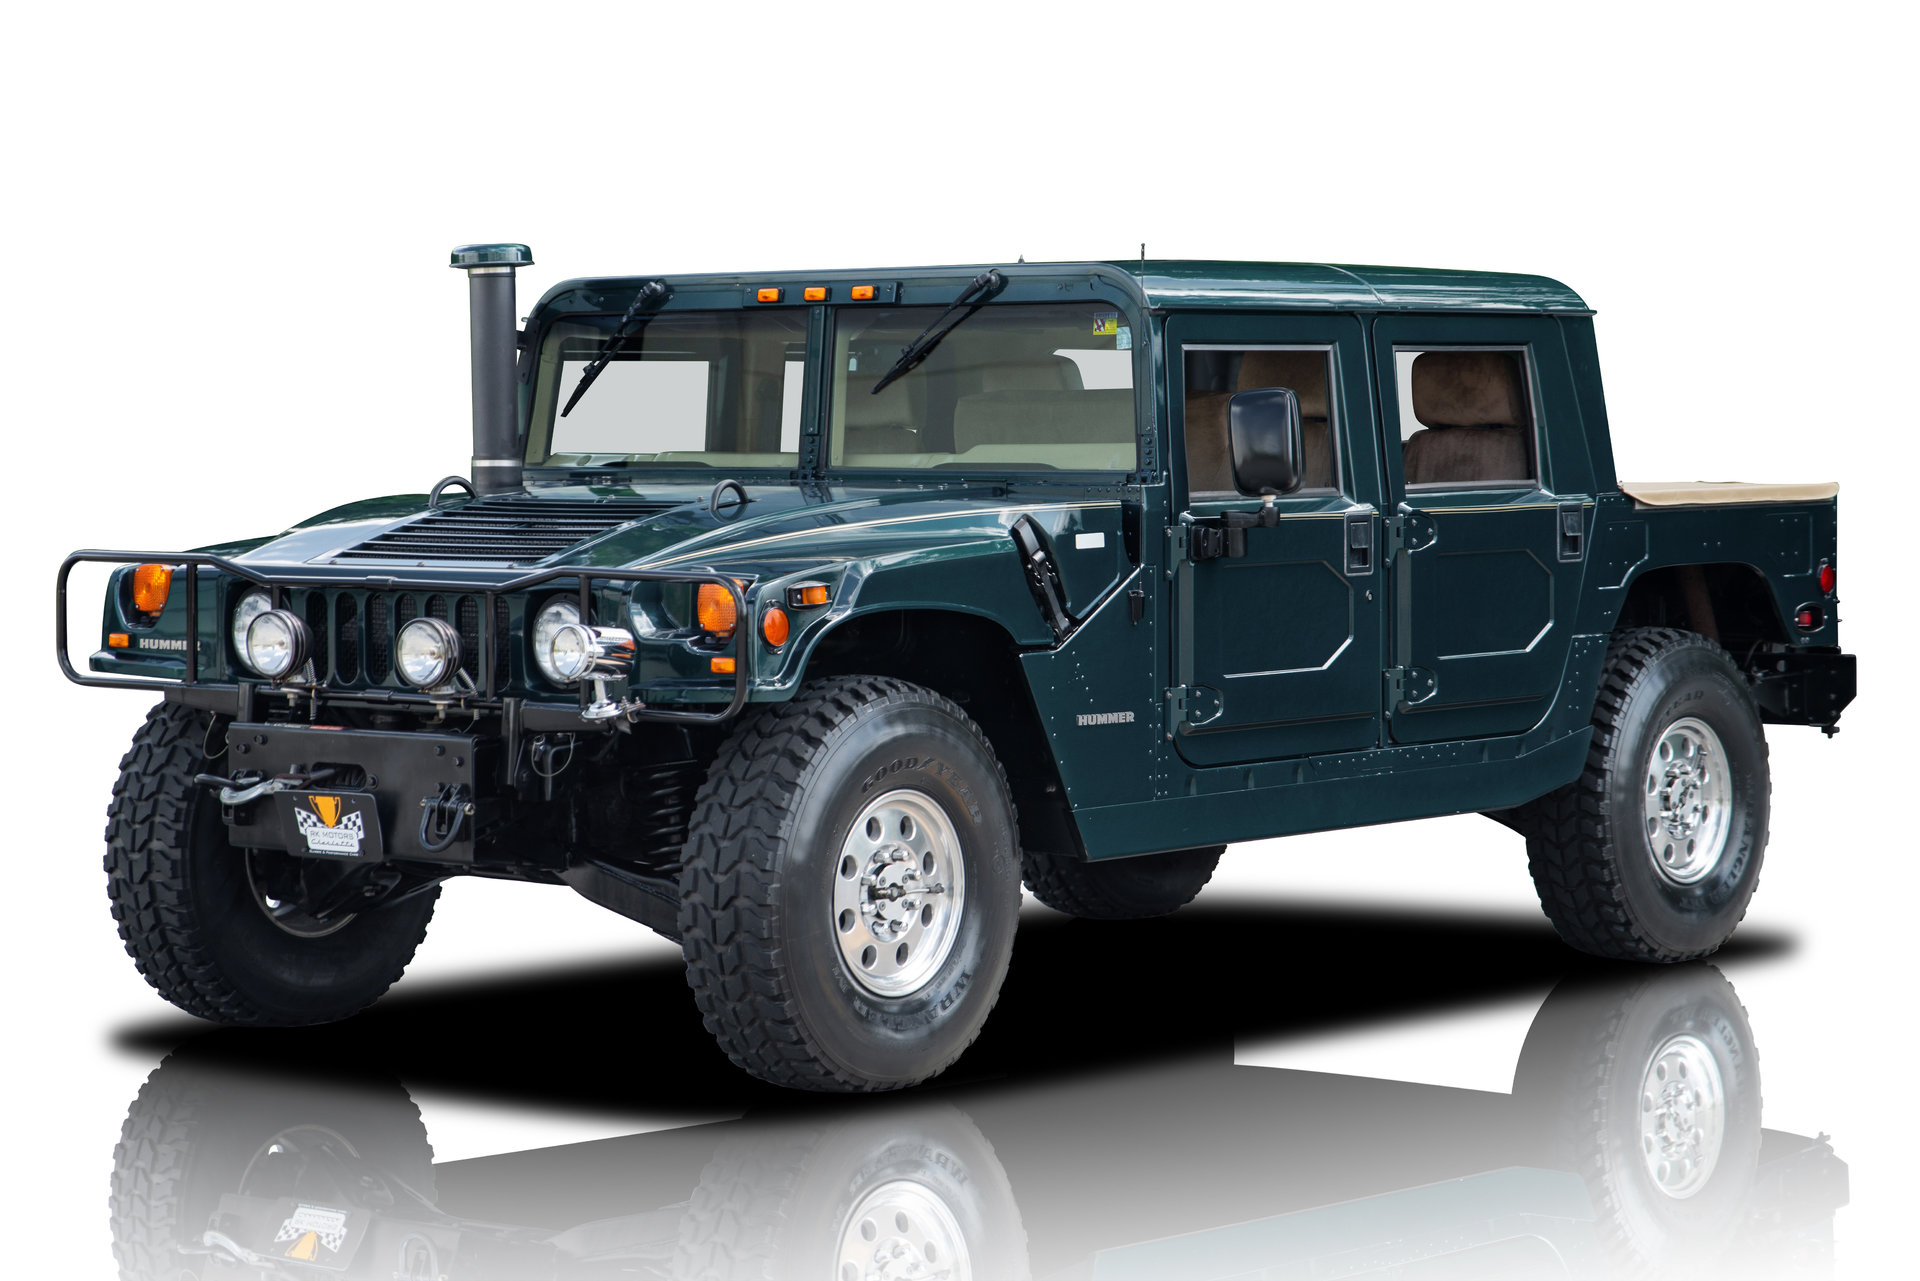 24,847 Mile Hummer H1 6.5L Turbo Diesel Automatic A/C Power Winch